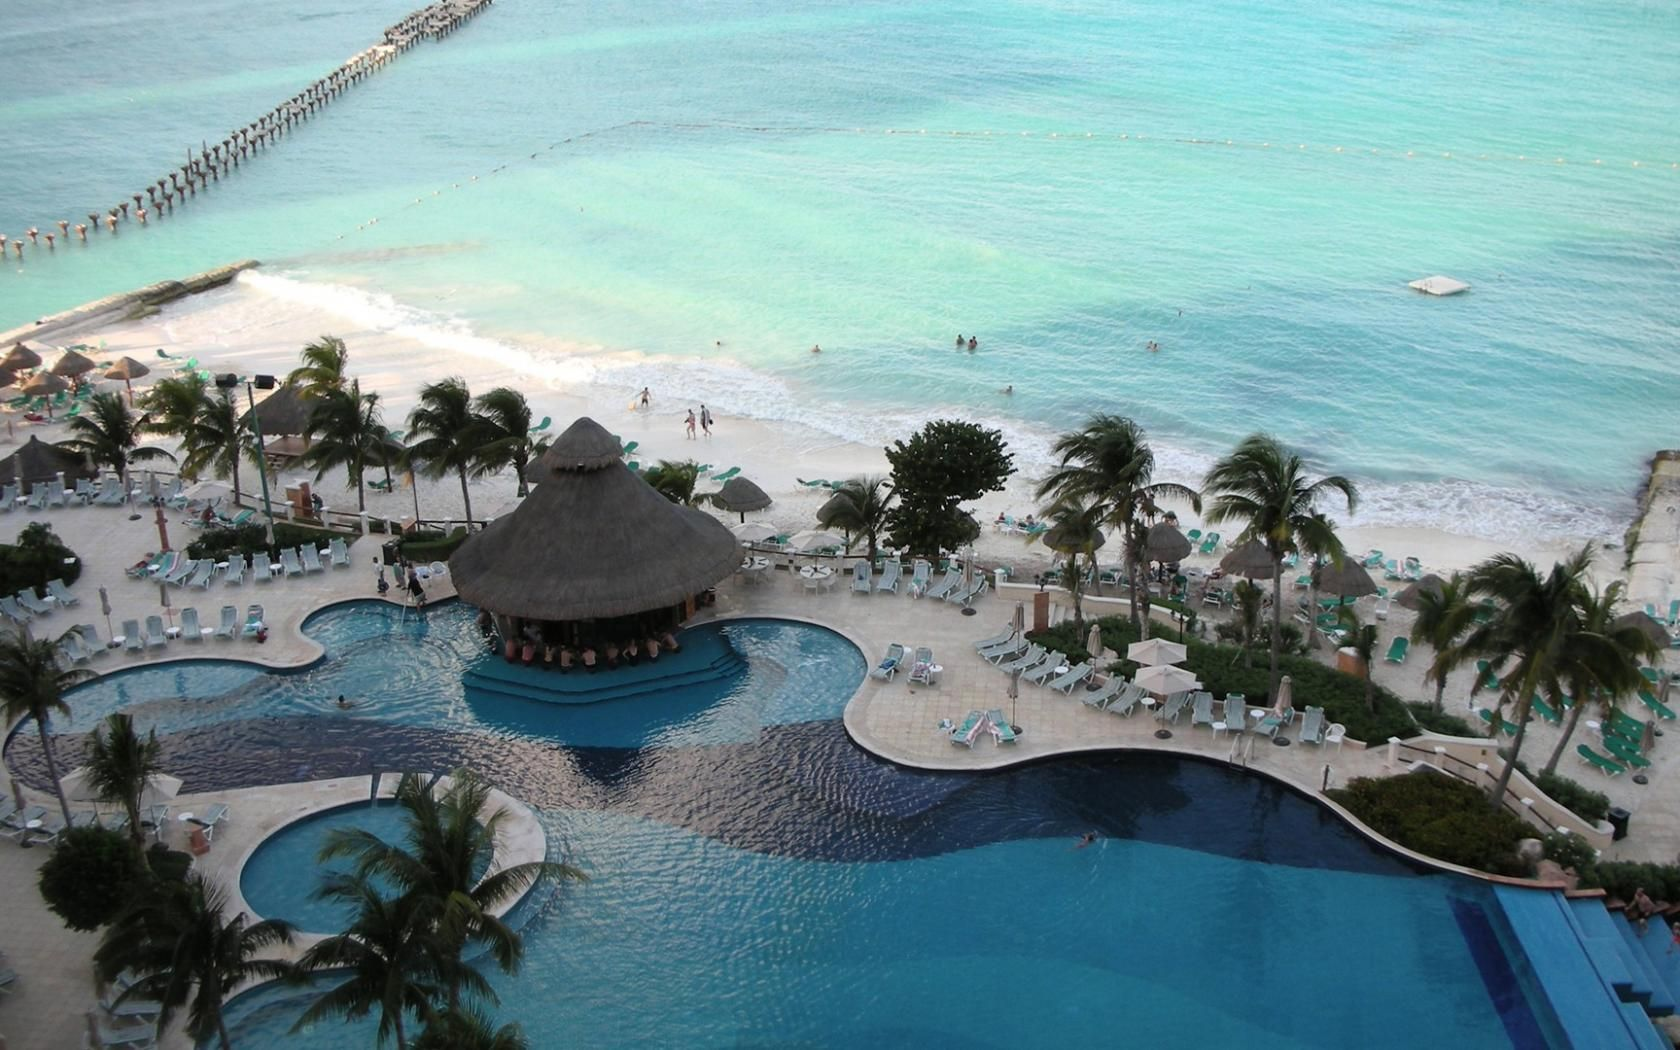 Mexico Swimming Pools Cancun Cancun Resorts Cancun Beaches Mexico Beach Resorts